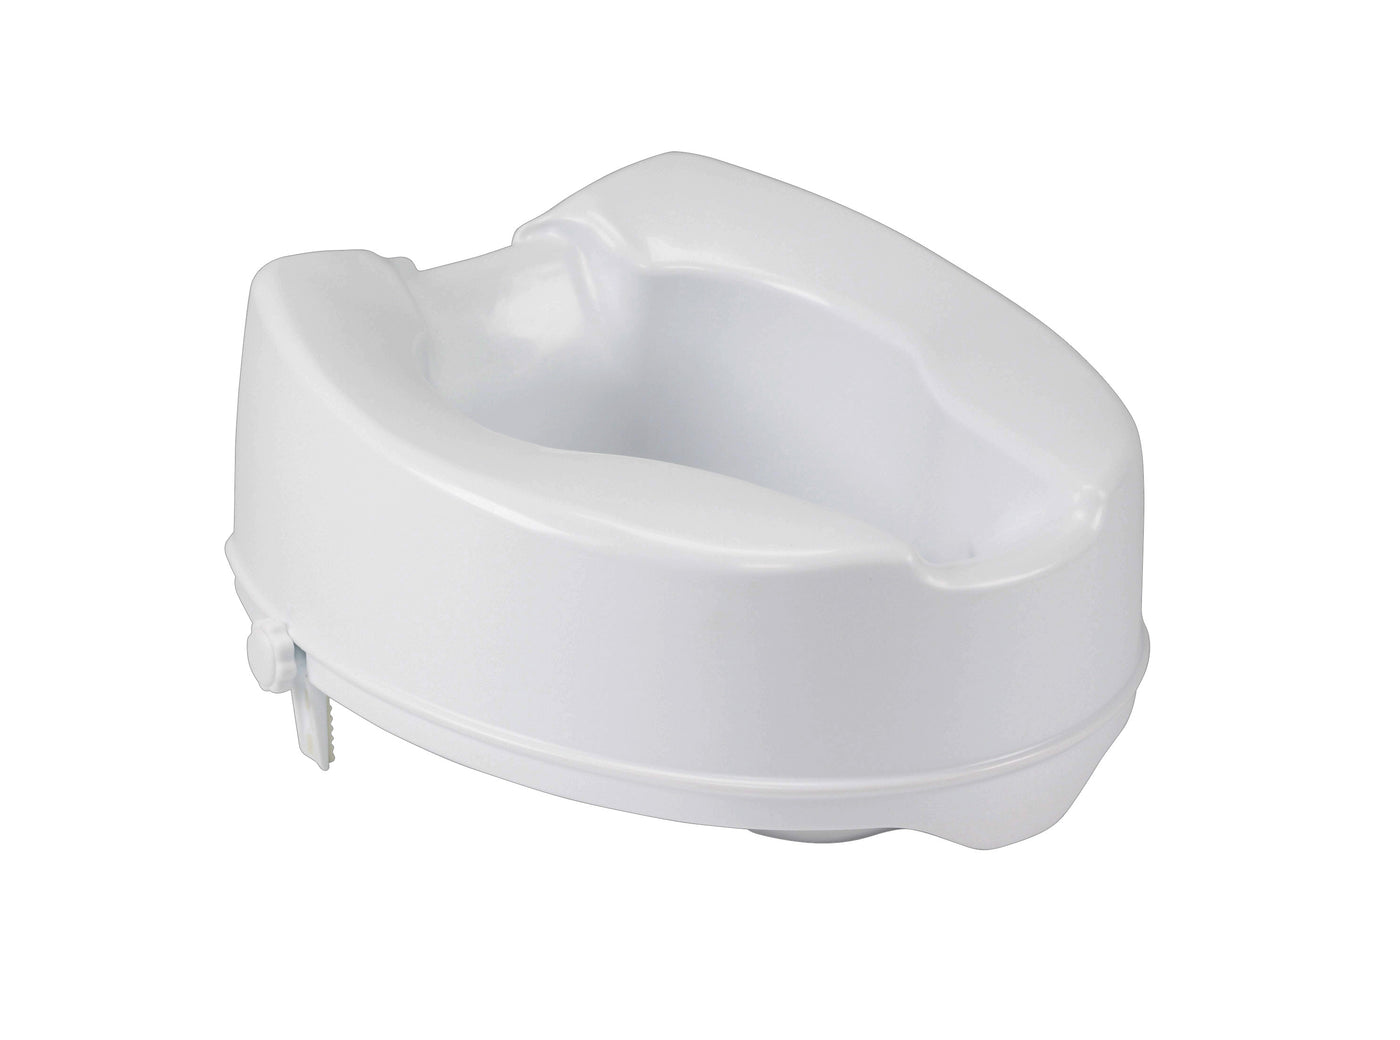 Admirable Raised Toilet Seat With Lock Pdpeps Interior Chair Design Pdpepsorg